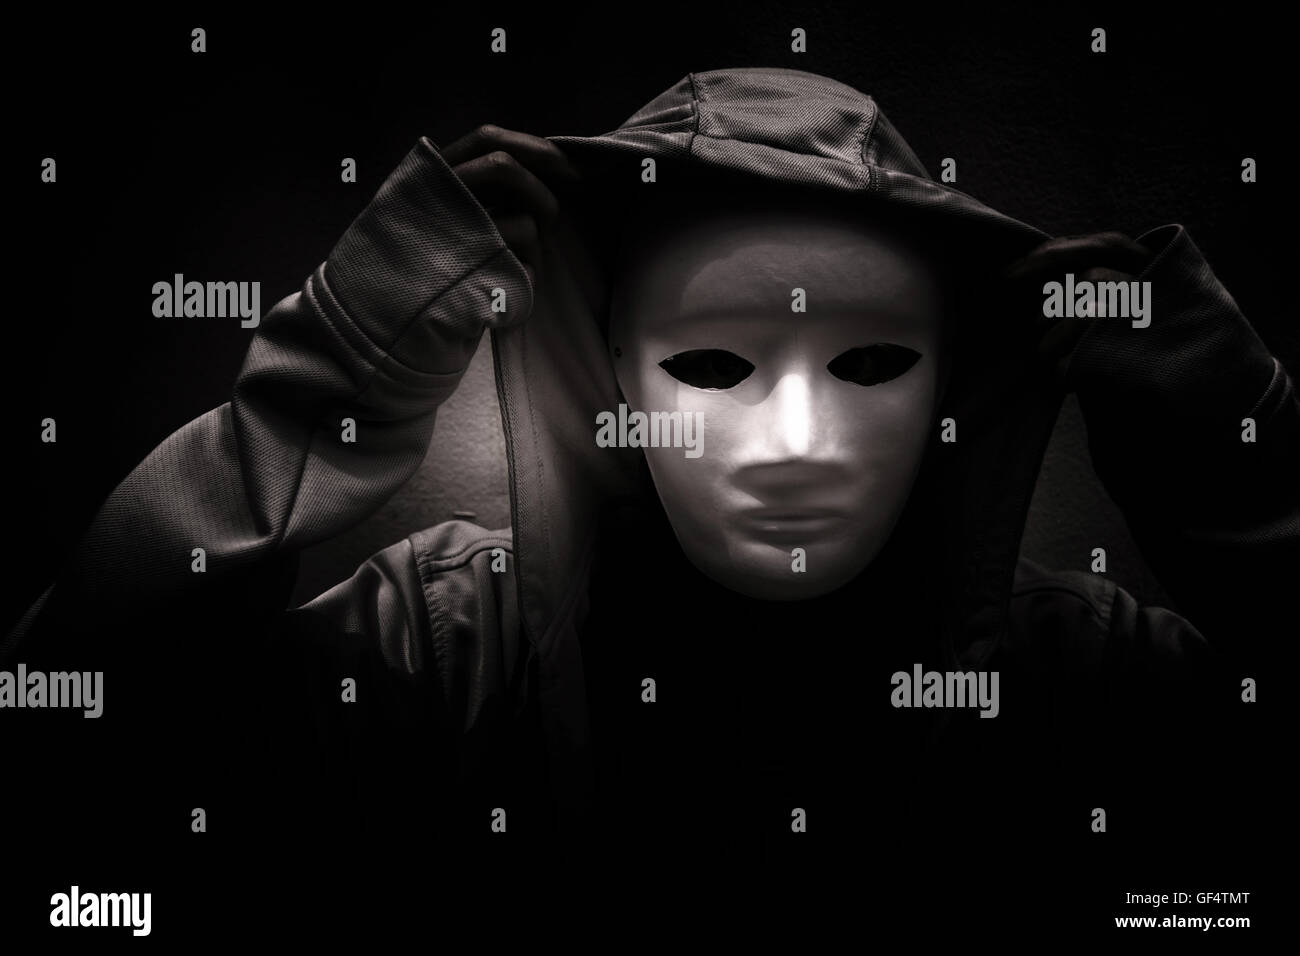 Dark doctrine,Mysterious woman wearing white mask under hoodie,Scary background for book cover - Stock Image